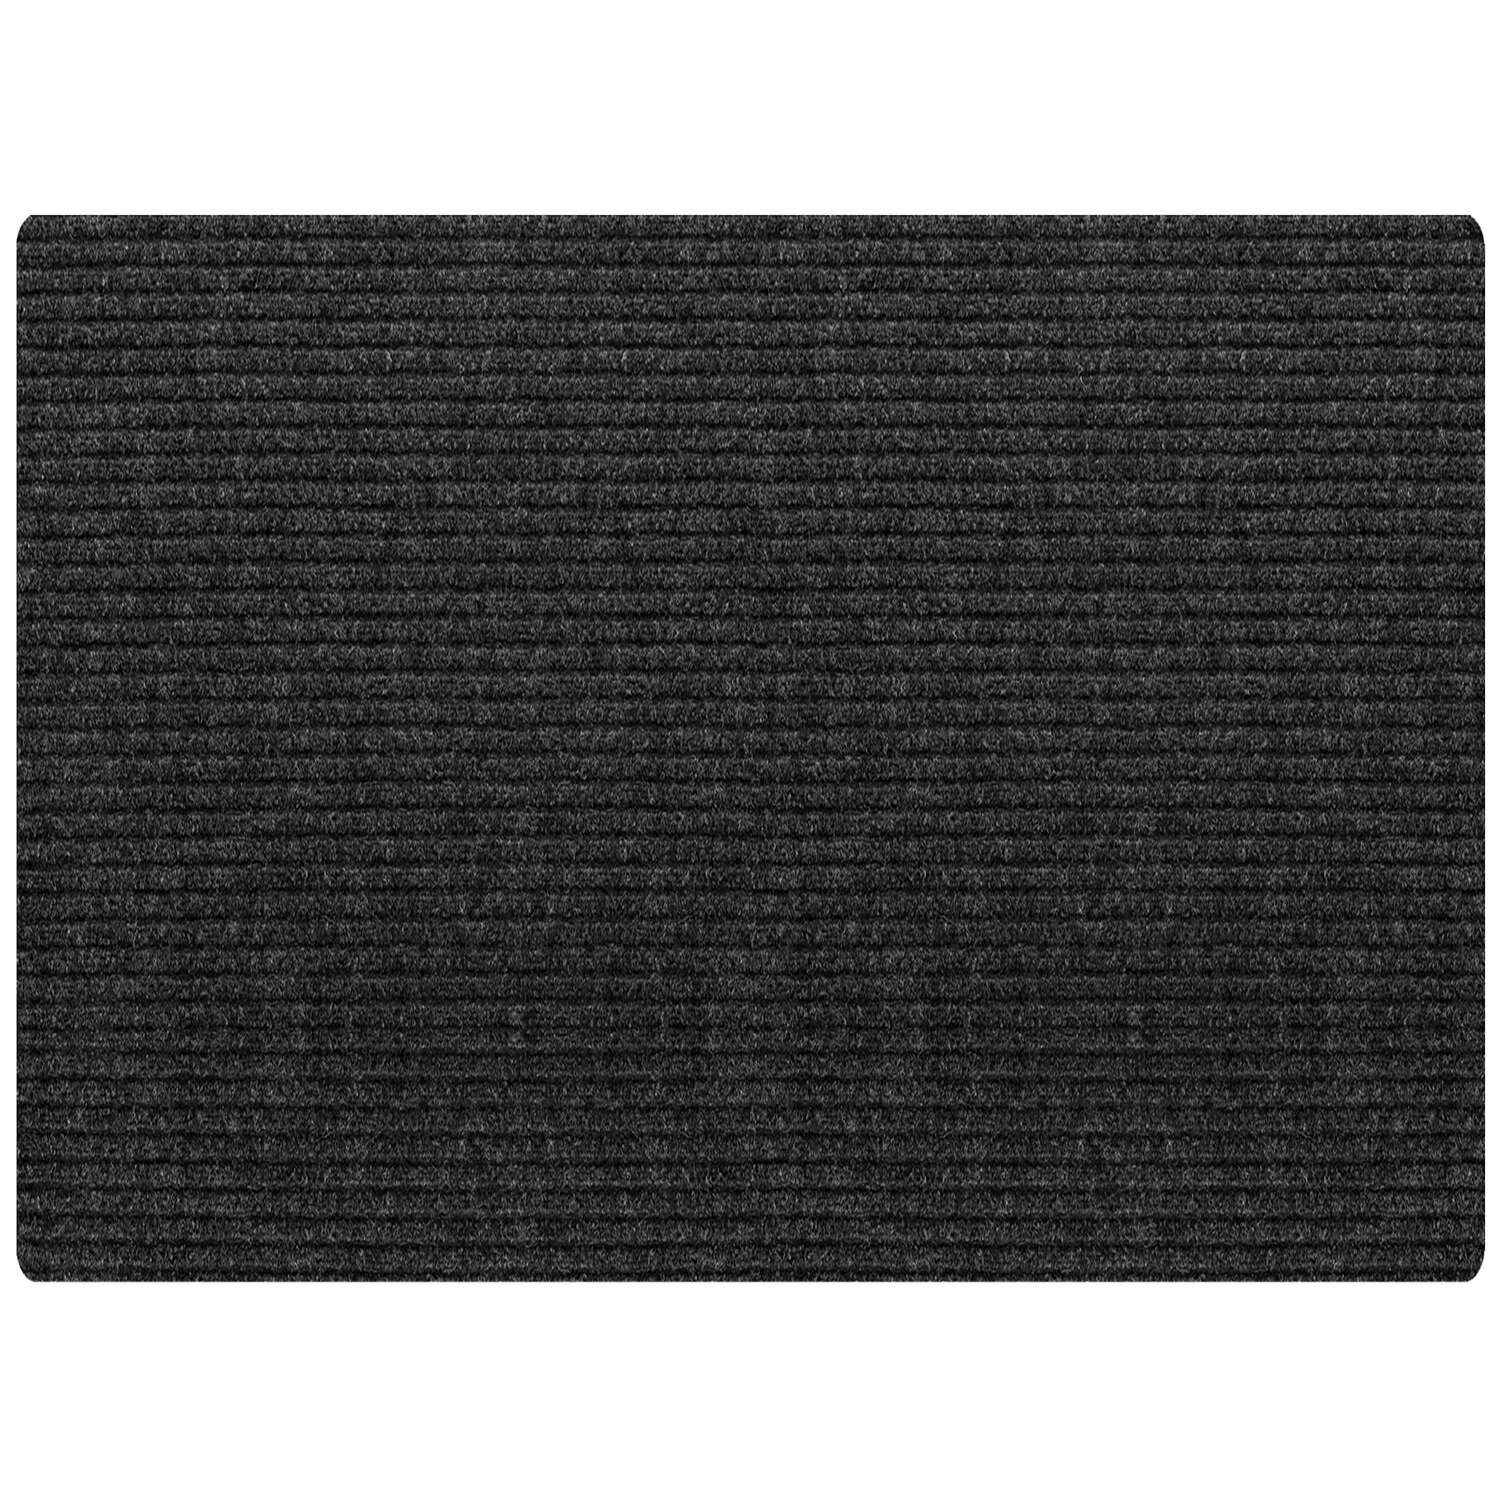 Multy Home 6 ft. L x 4 ft. W Charcoal Cocord Nonslip Runner Mat